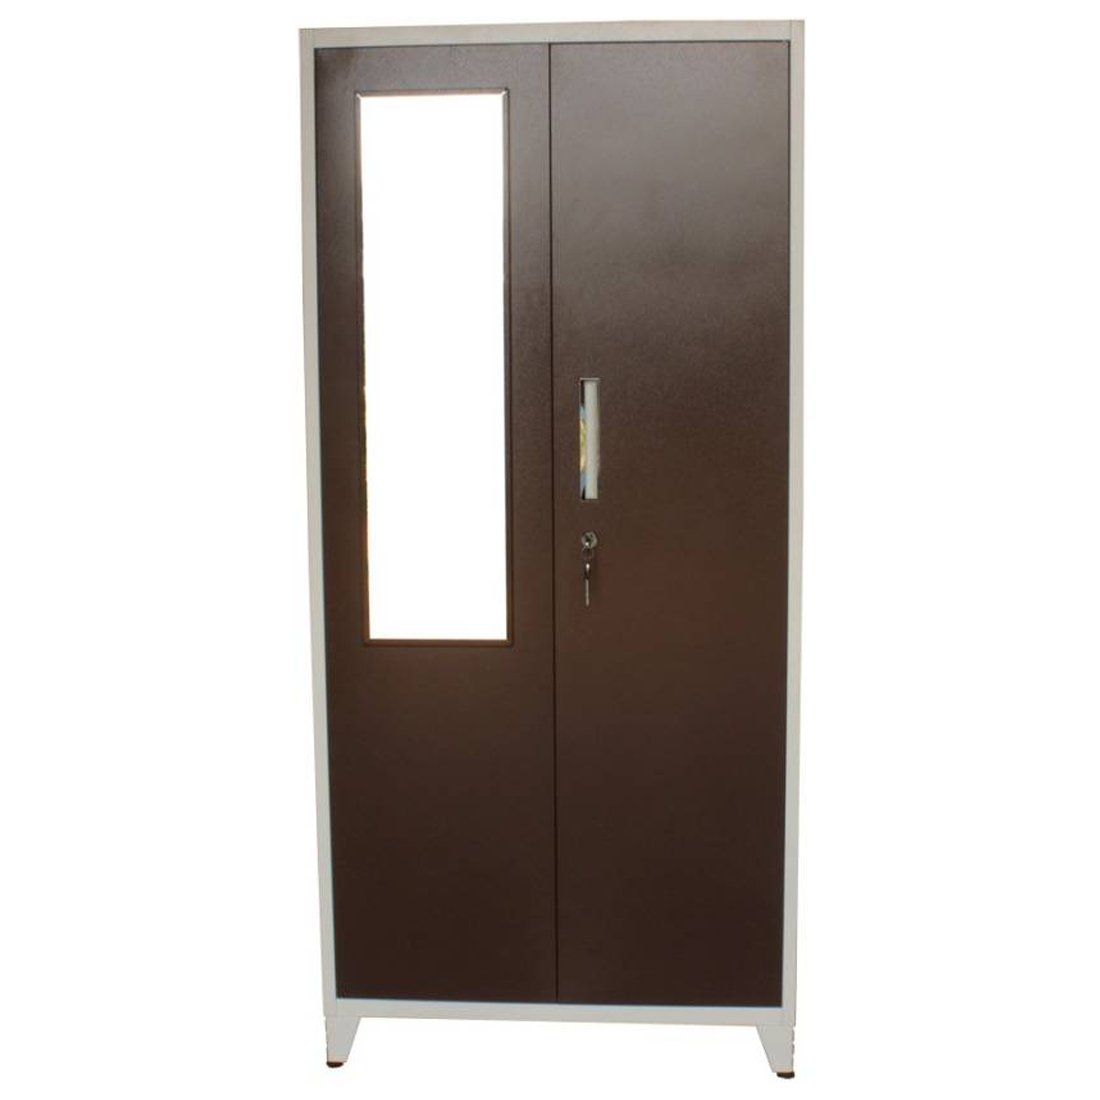 Woodness Tiffany 2-Door Wardrobe (Matte Finish, Brown)